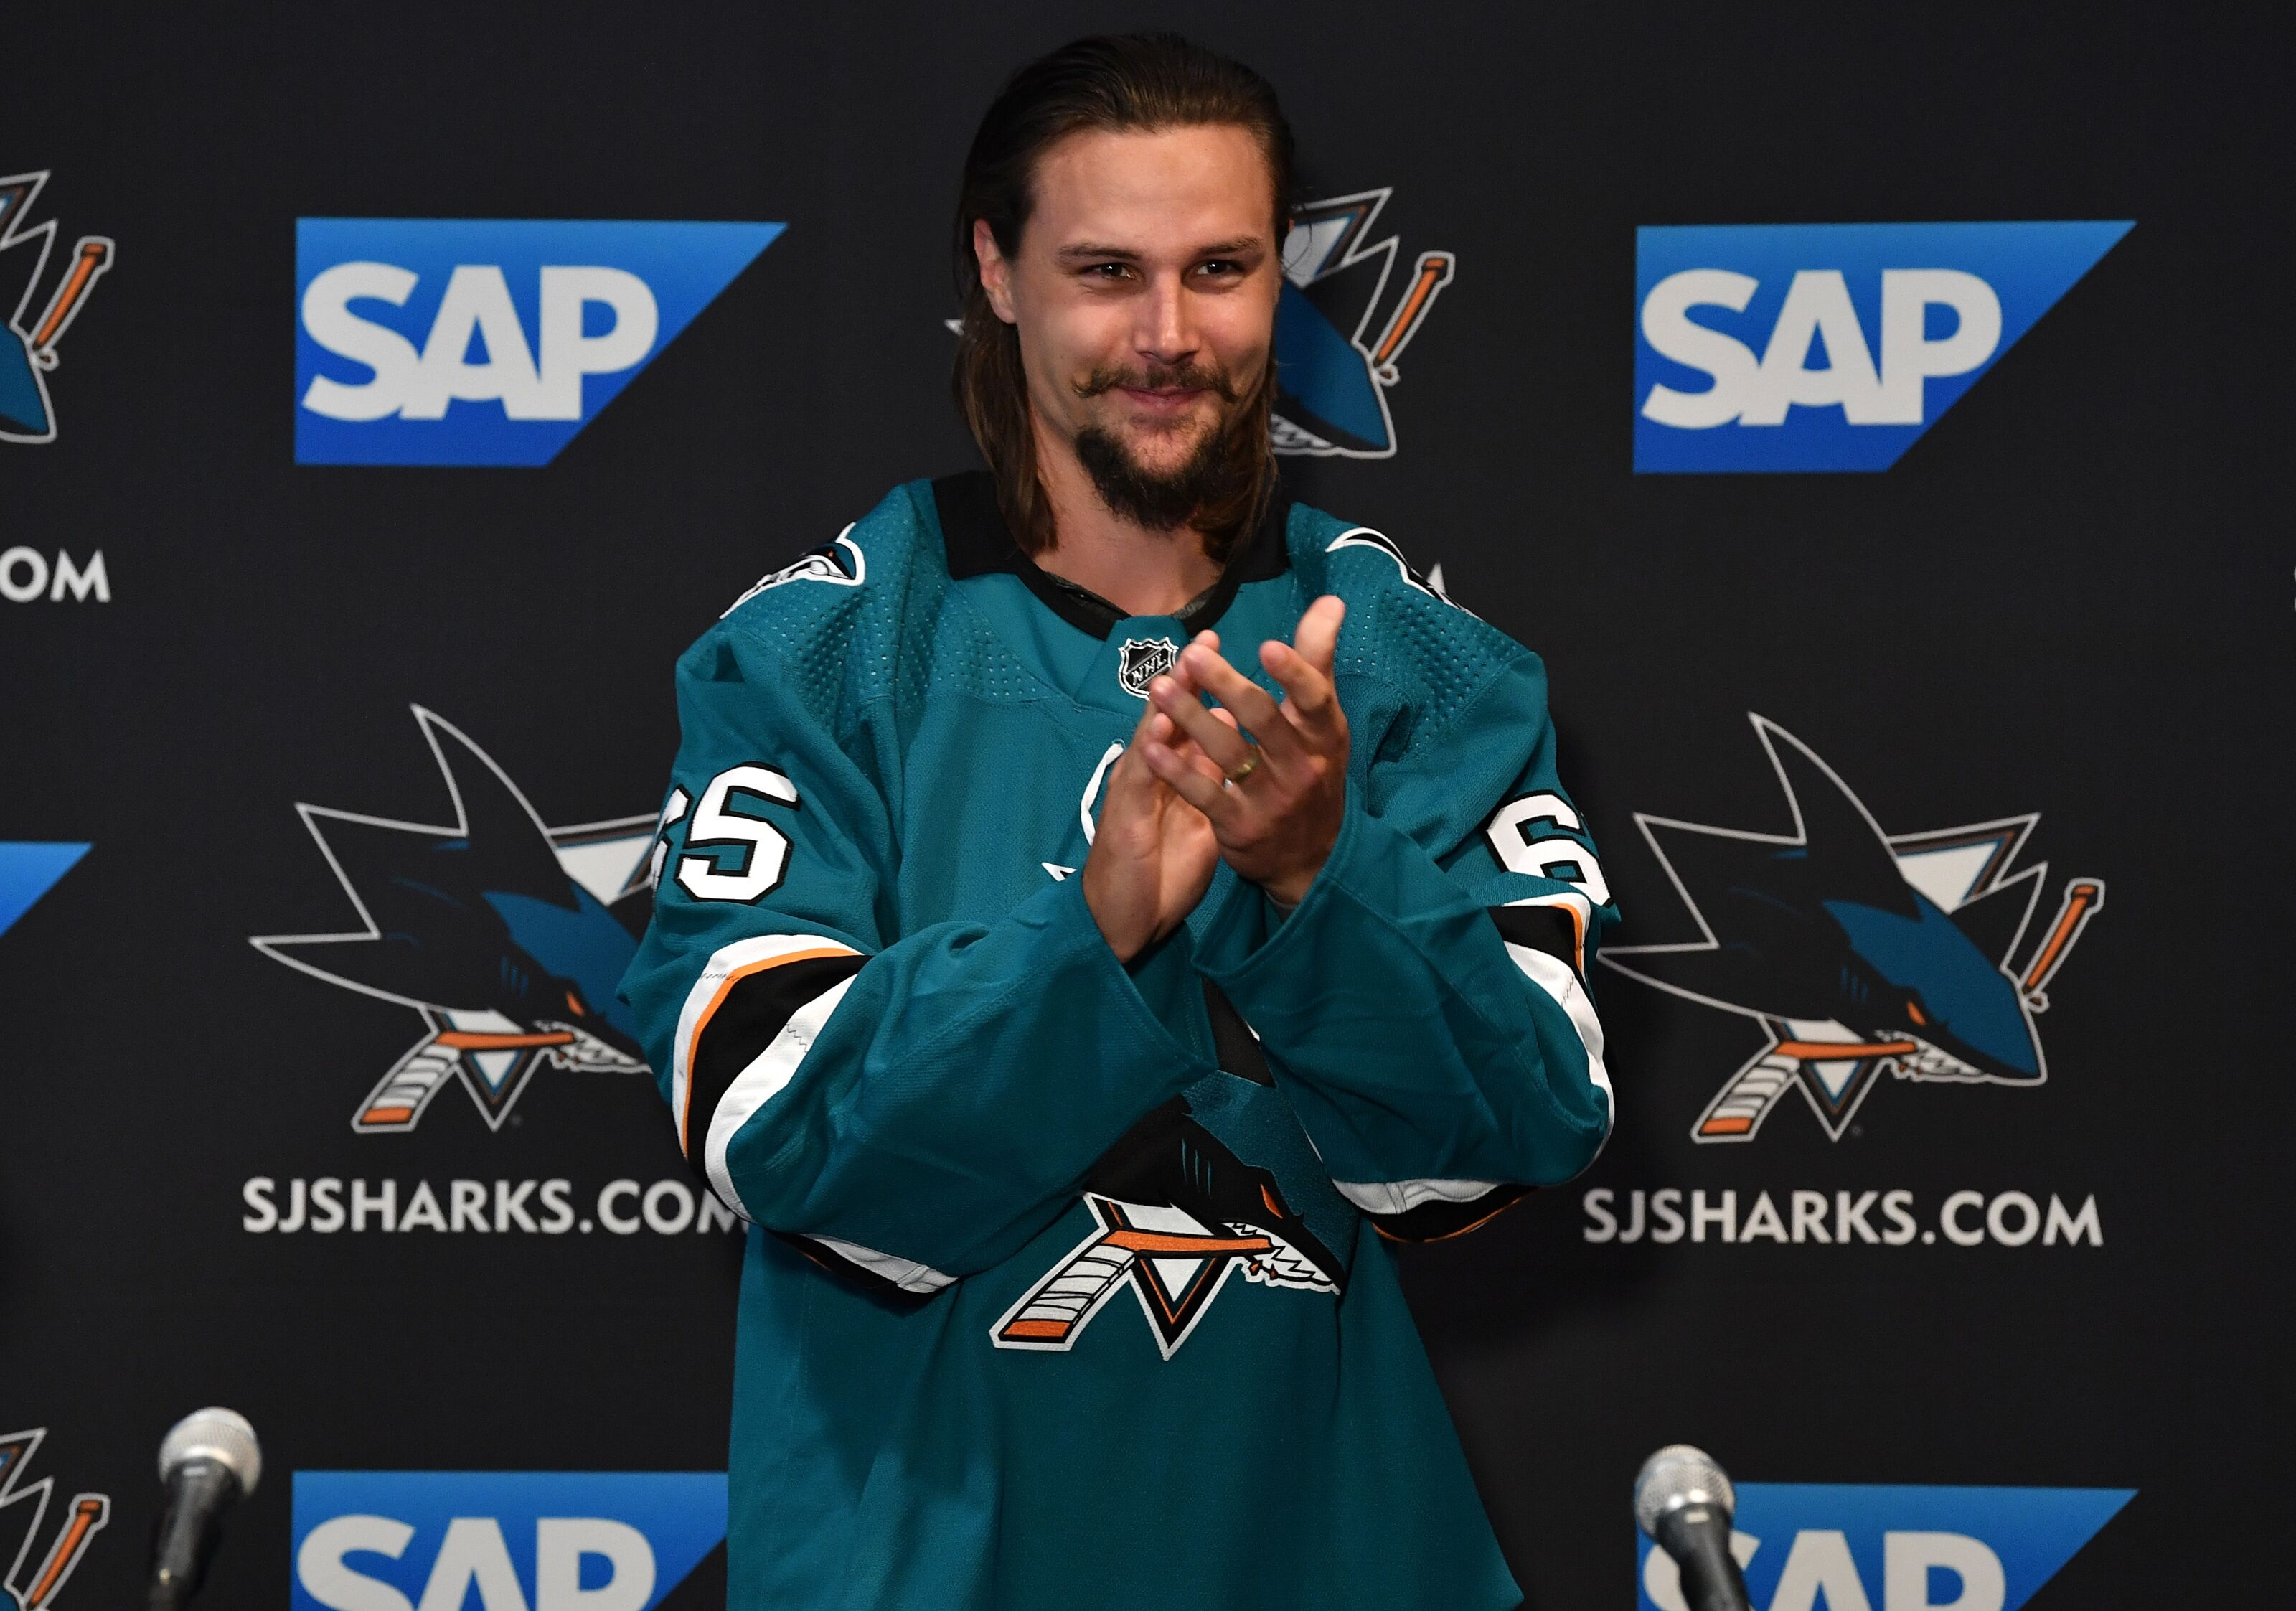 a414ed91296 San Jose Sharks What to Watch For: First Glimpse of EK65 in Teal